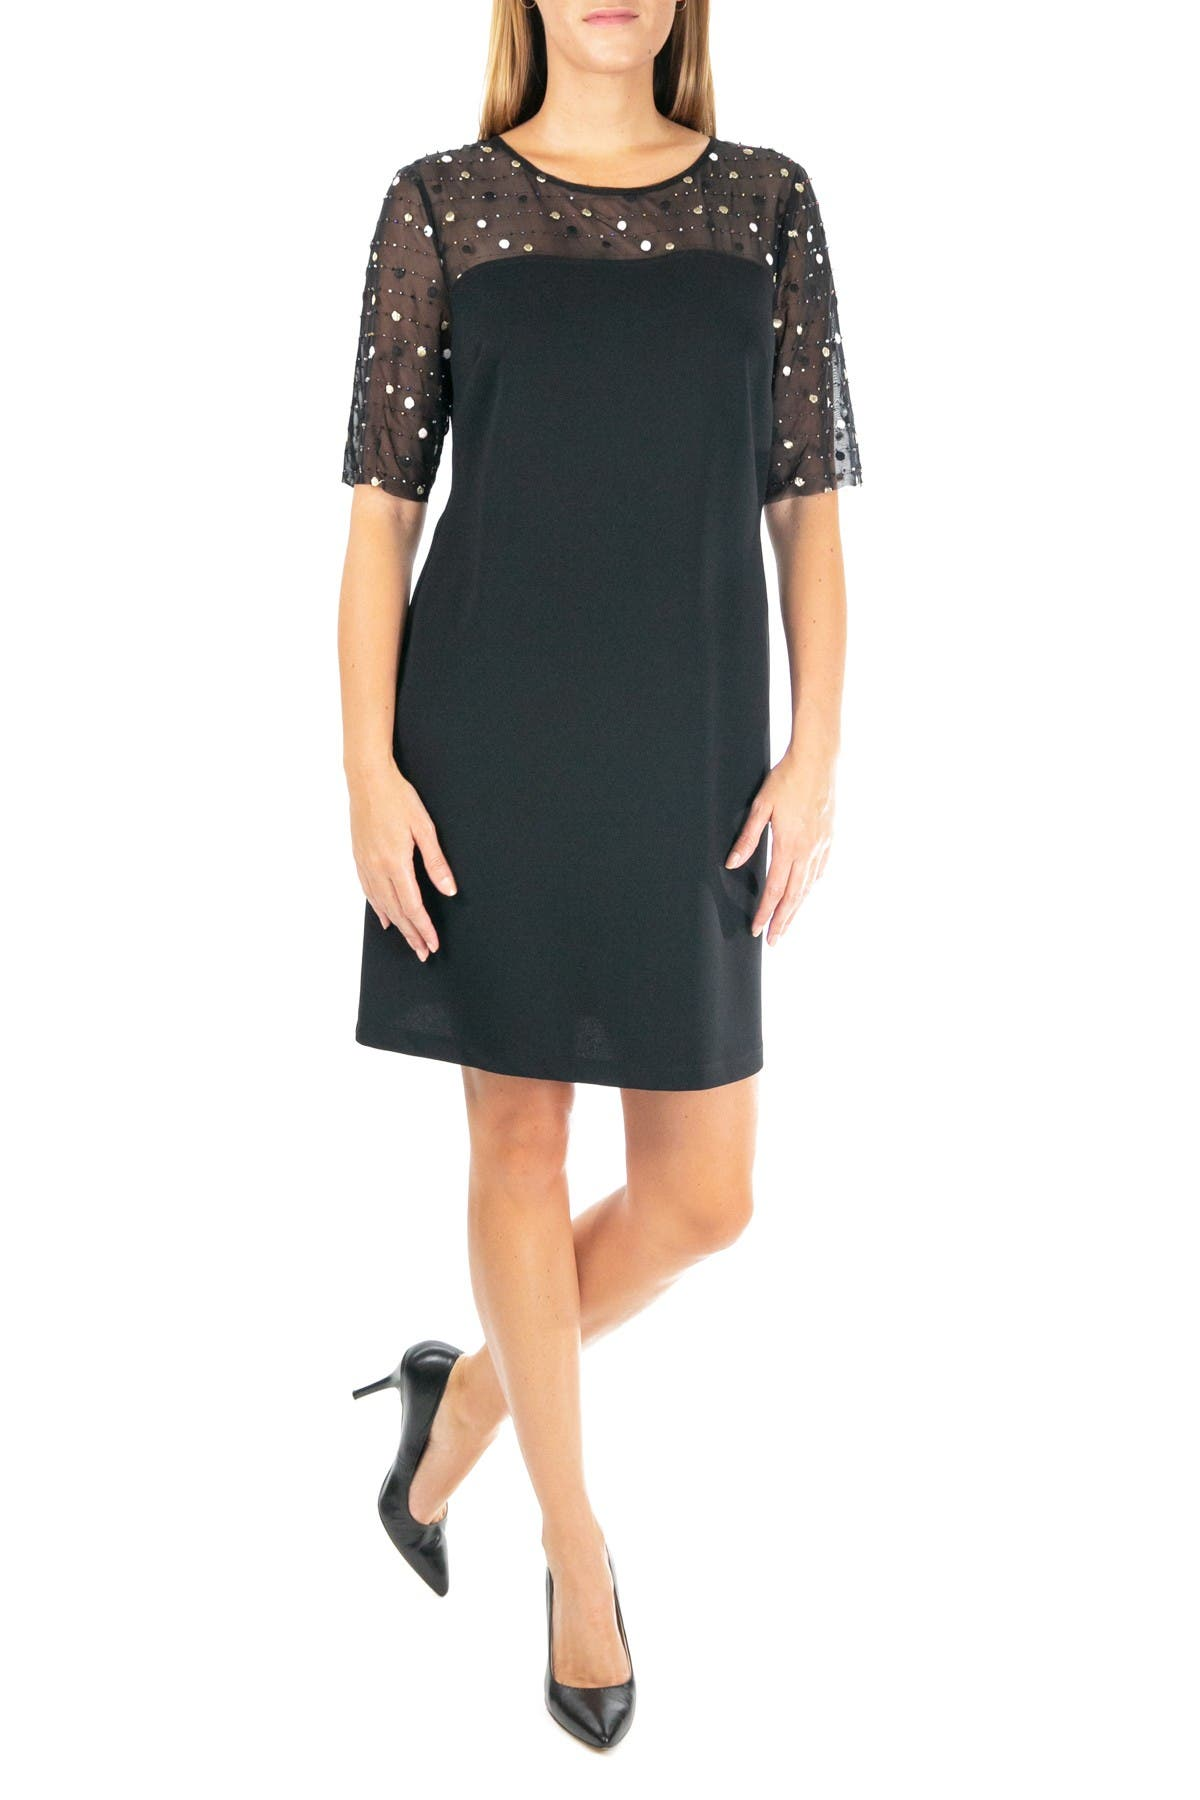 Image of Nina Leonard Jewel Neck Crepe Dress